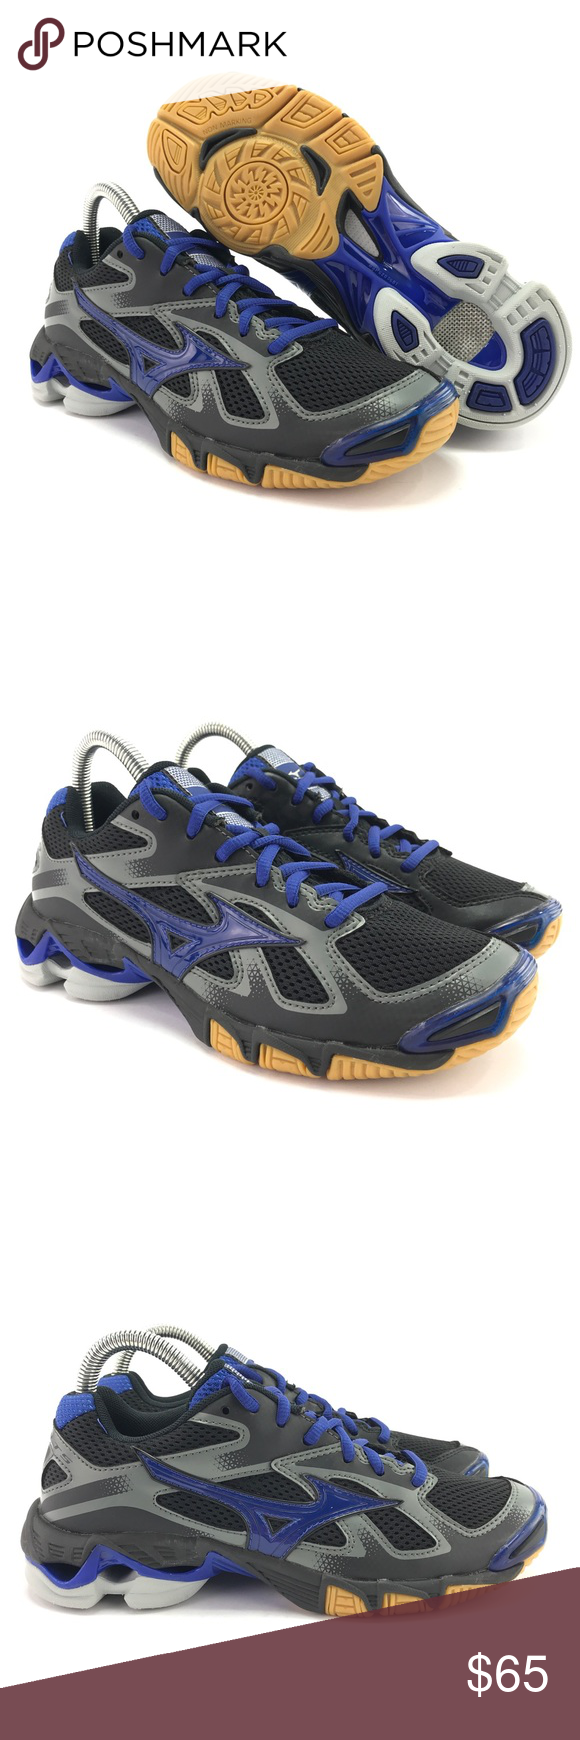 Mizuno Women S Wave Bolt 5 Volleyball Shoes Size 7 In 2020 Volleyball Shoes Mizuno Shoes Mizuno